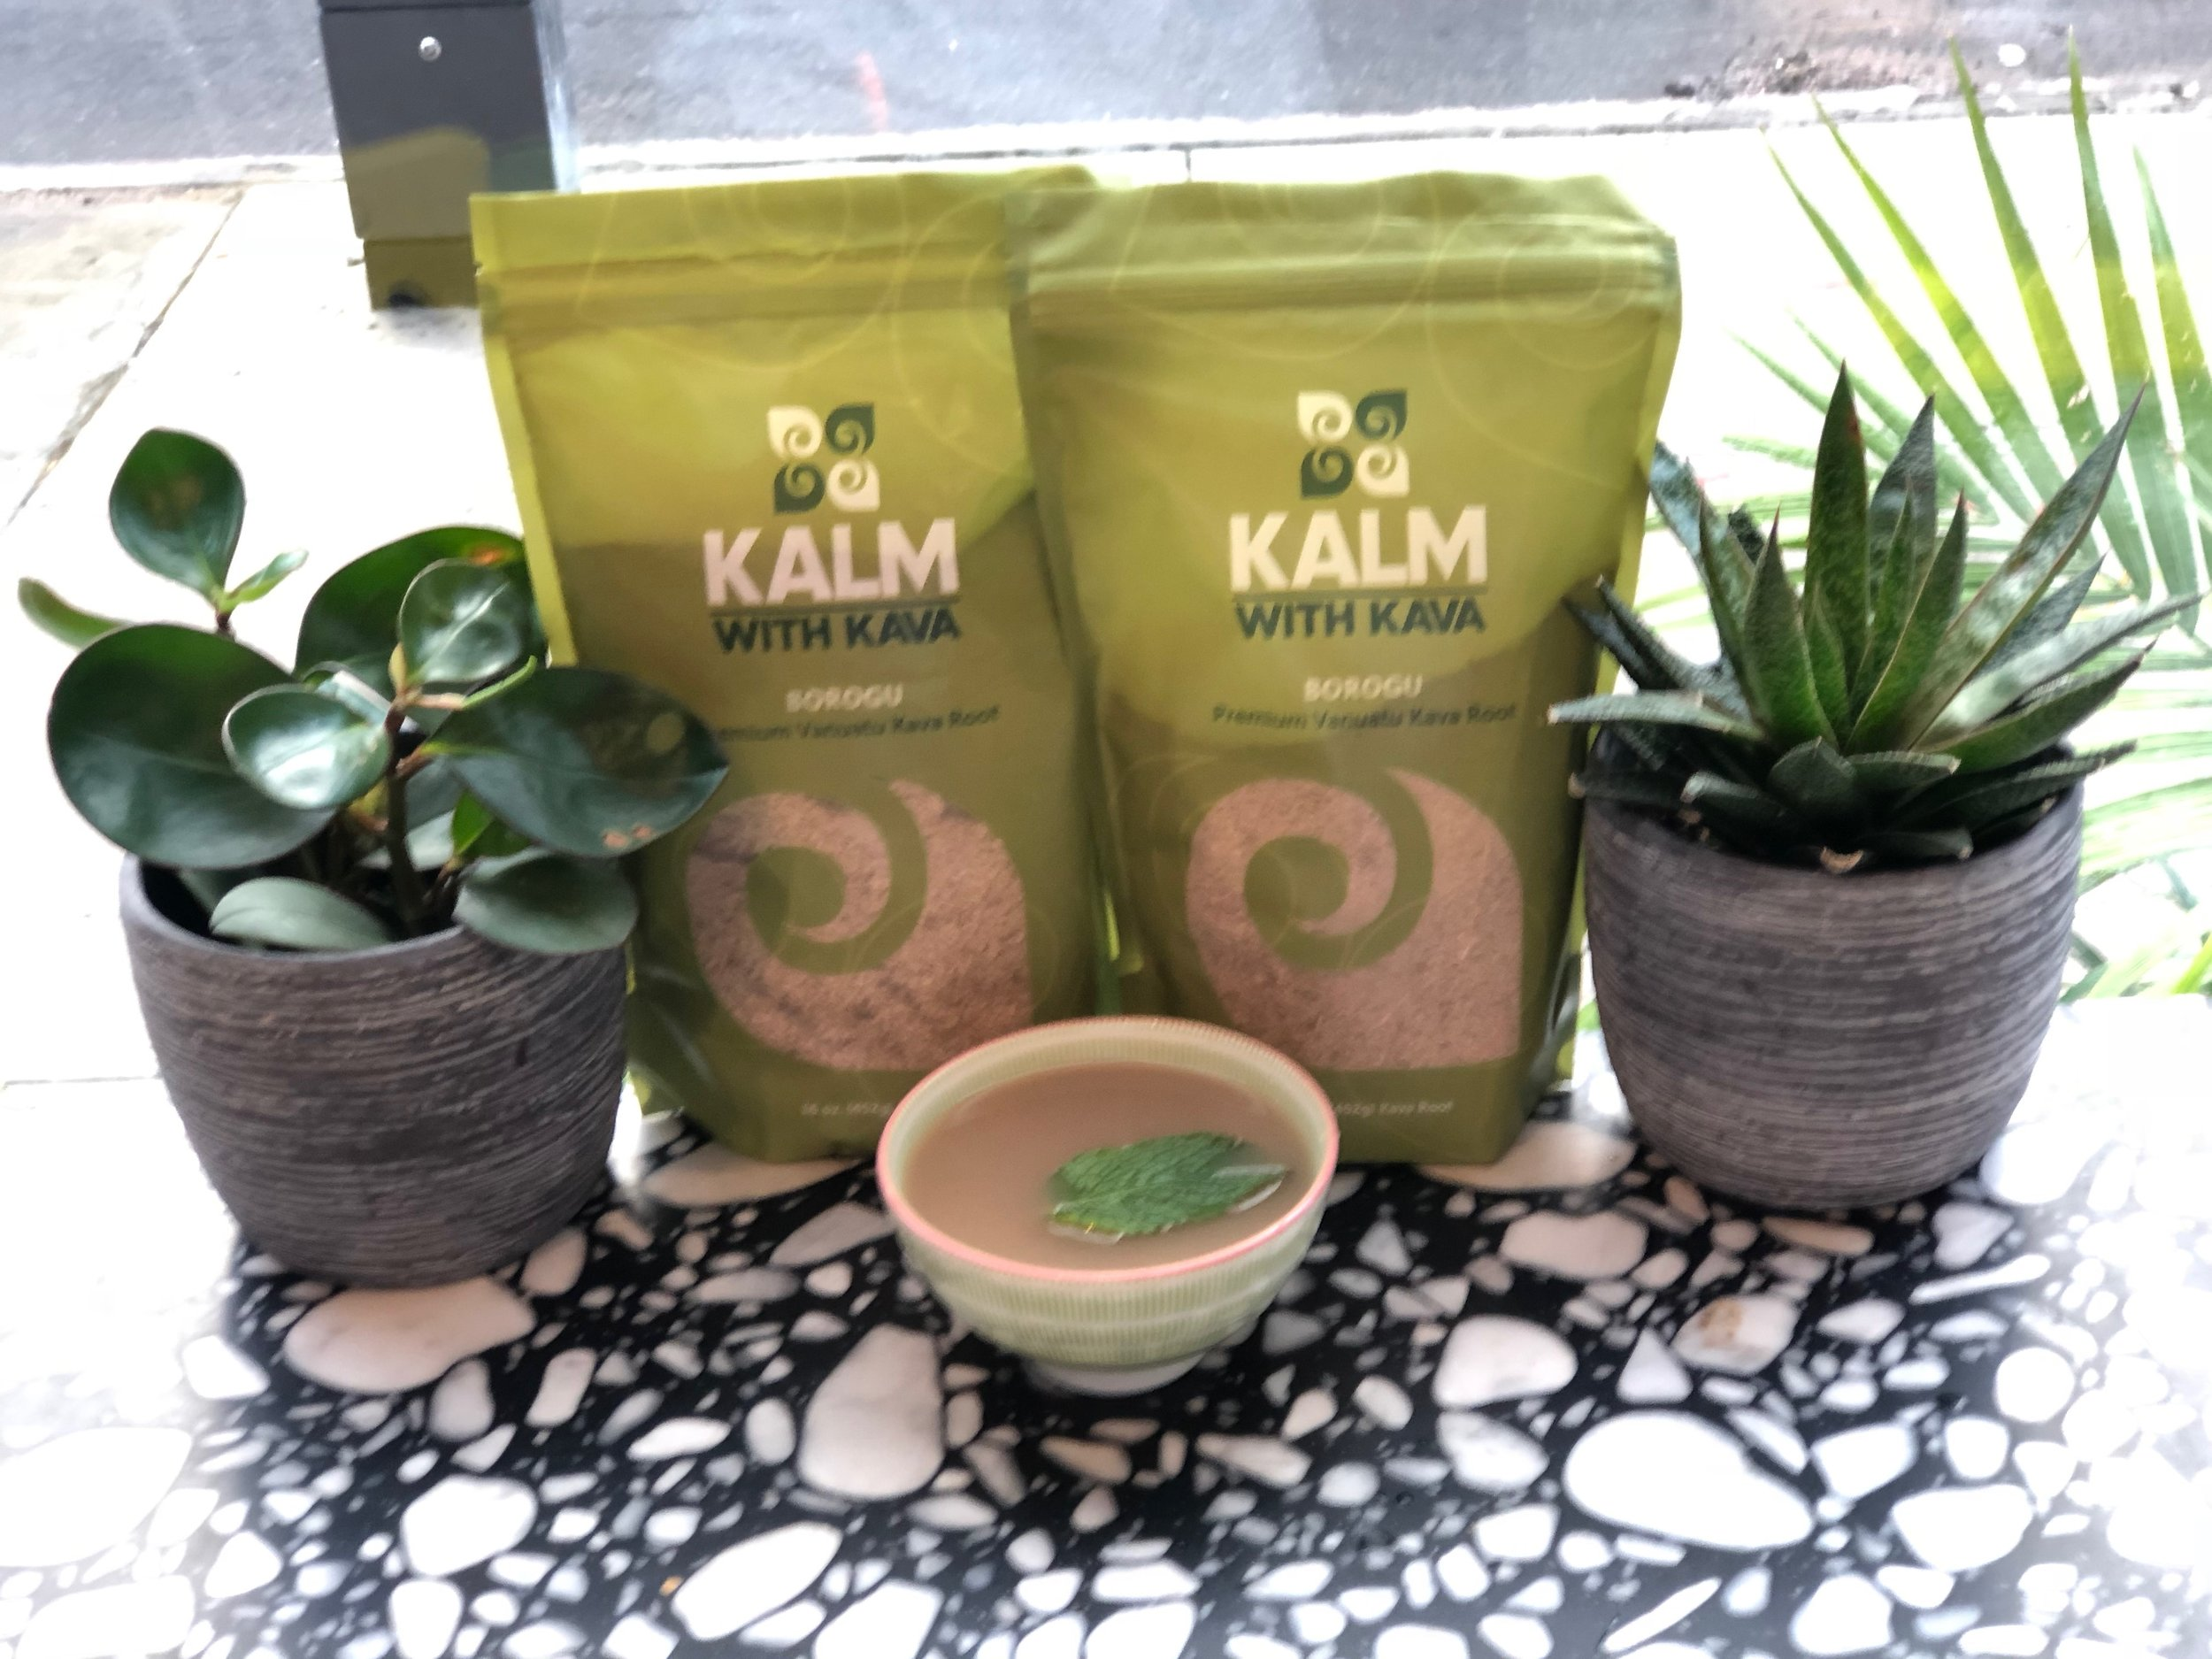 KAVA HOT & COLD - Kava Starter PackageIncludes a Kava Shot, 2 Kava Bowls, 2 Kava CocktailsKAVA COCKTAILSKava Lakou DelightKava, Pineapple Juice, Ginger, Lime & Simple SyrupKava MojitoKava, Mint, Lime & Simple SyrupKava RefresherKava, Ginger, Lime & Simple SyrupHOT KAVA COCKTAILSKava Golde Kava, Turmeric & Nut Milk of Your ChoiceKava ChaiKava, Chai & Nut Milk of Your ChoiceKava MochaKava, Cocoa & Nut Milk of Your ChoiceTRADITIONAL KAVAKava Shot2 oz of concentrated KavaKava Bowls8 oz of Traditionally Prepared Kava